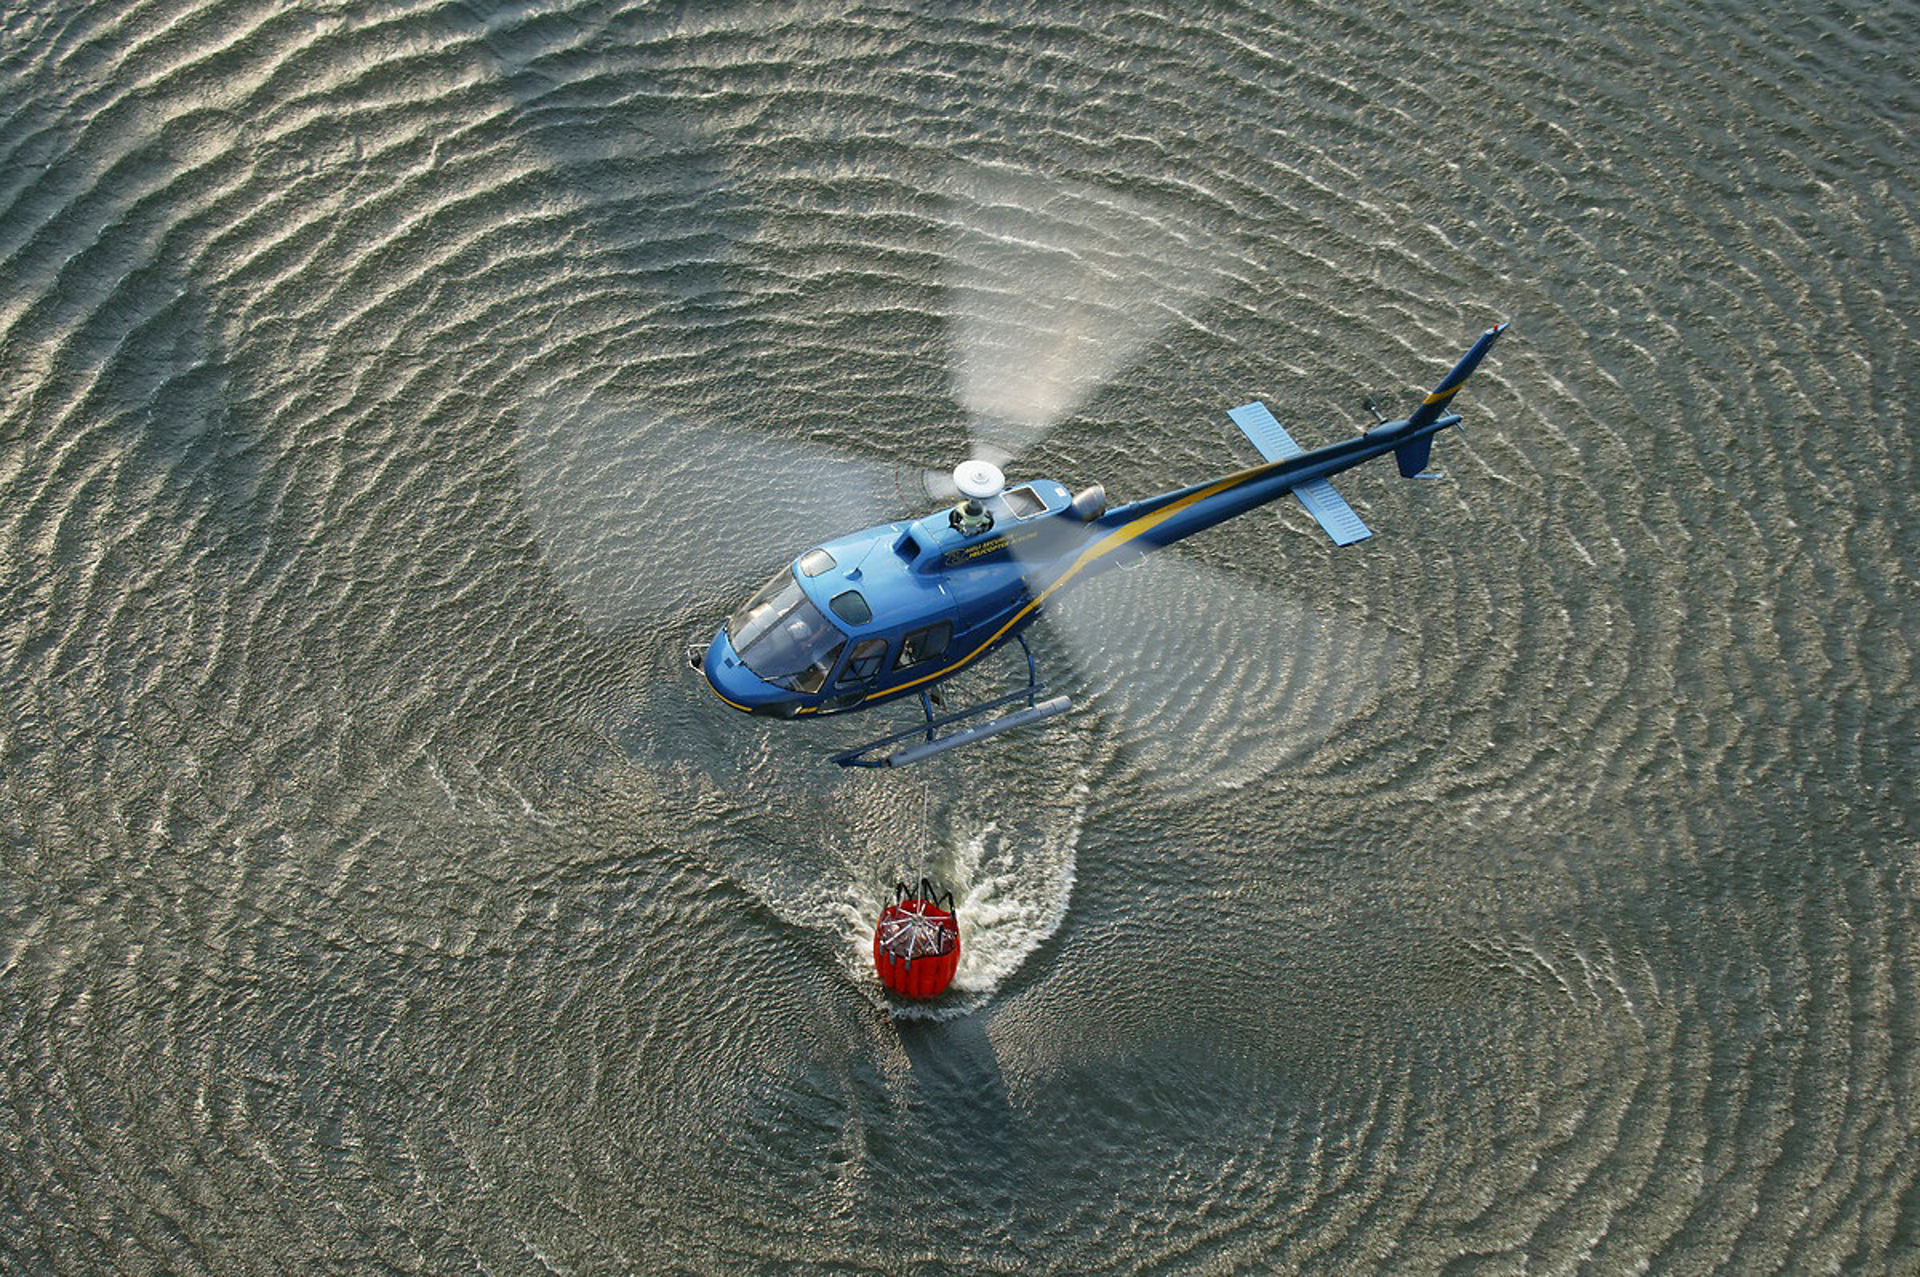 An Airbus-built helicopter loads its bucket-type water dispersal system in a dipping operation.